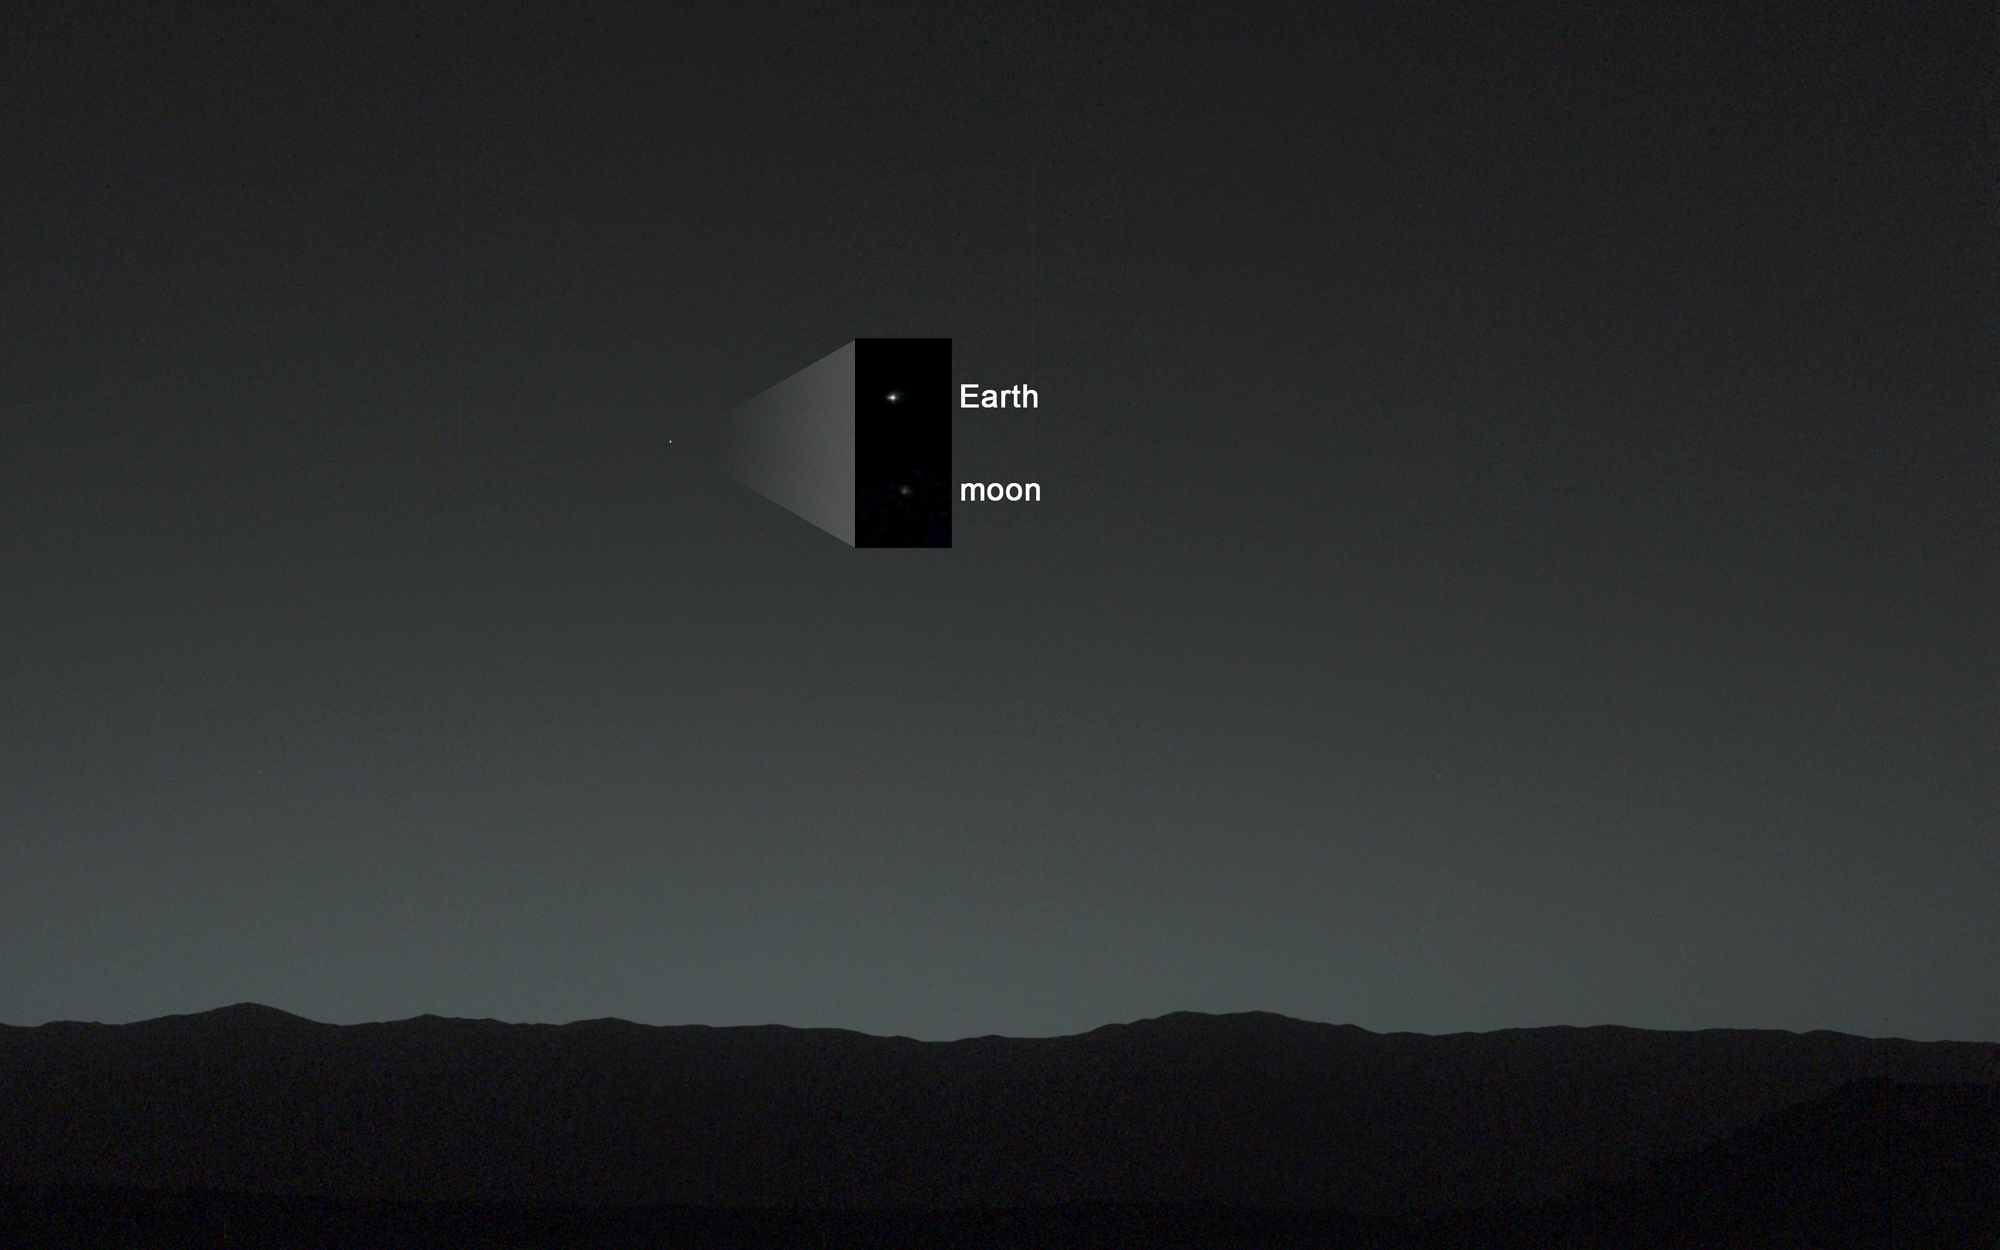 Curiosity Rover Sees Earth and Moon from Mars (Inset)